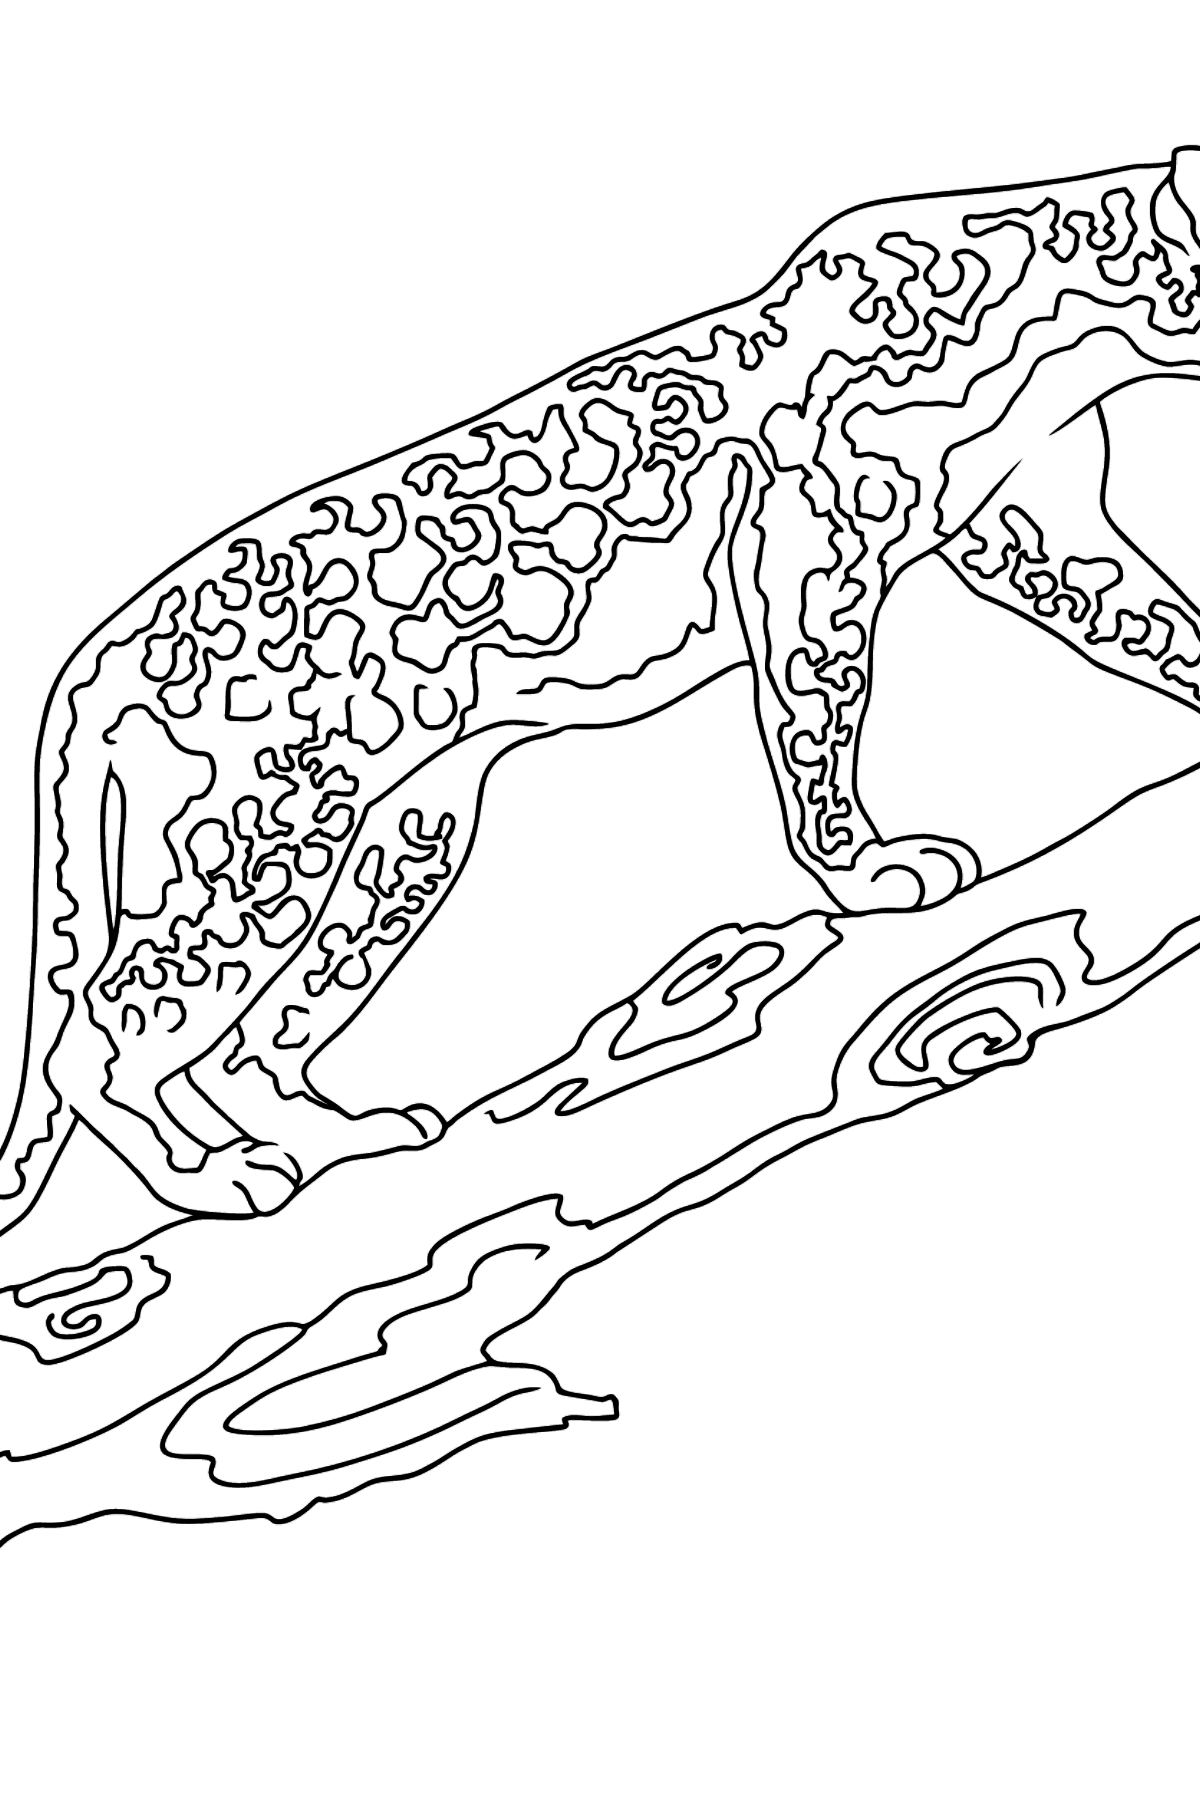 Coloring Page - A Leopard is Getting Ready for a Jump - Coloring Pages for Kids